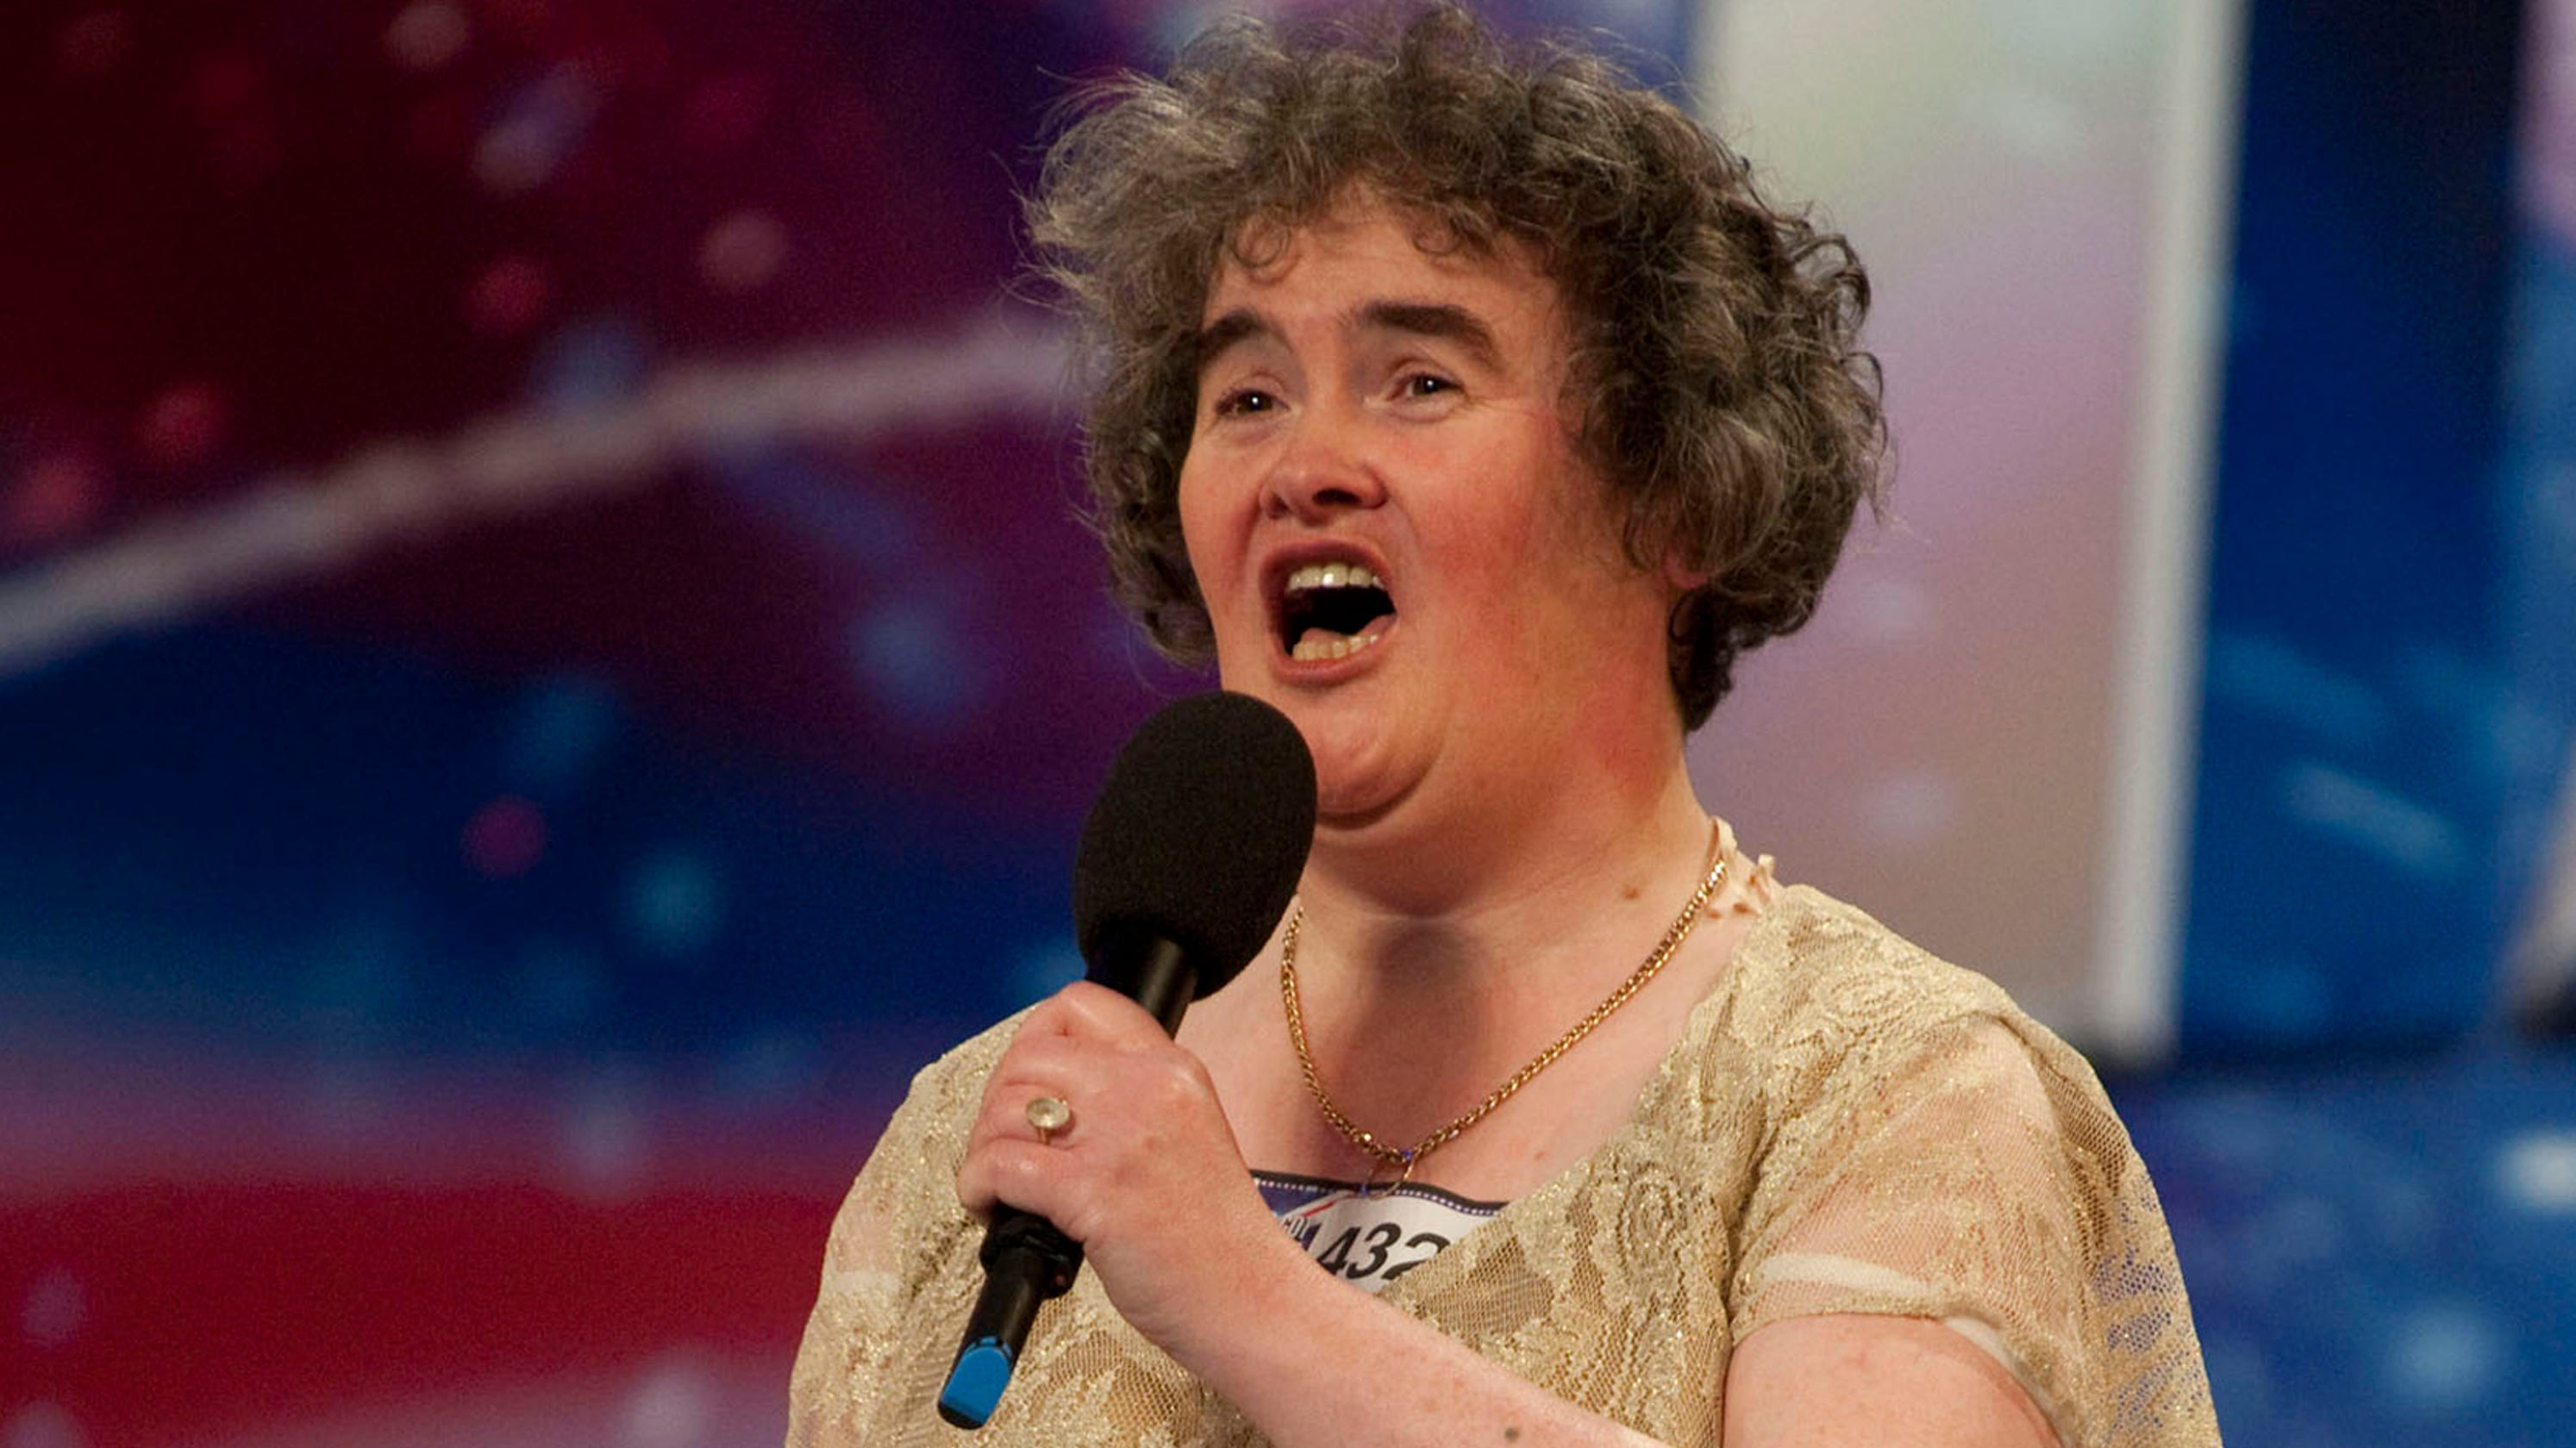 09ae62c0-1504-4ca2-958a-94e8ee7a3c9a-D05_Old_Susan_Boyle_01.JPG?crop=1663,935,x1,y185&width=3200&height=1680&fit=bounds